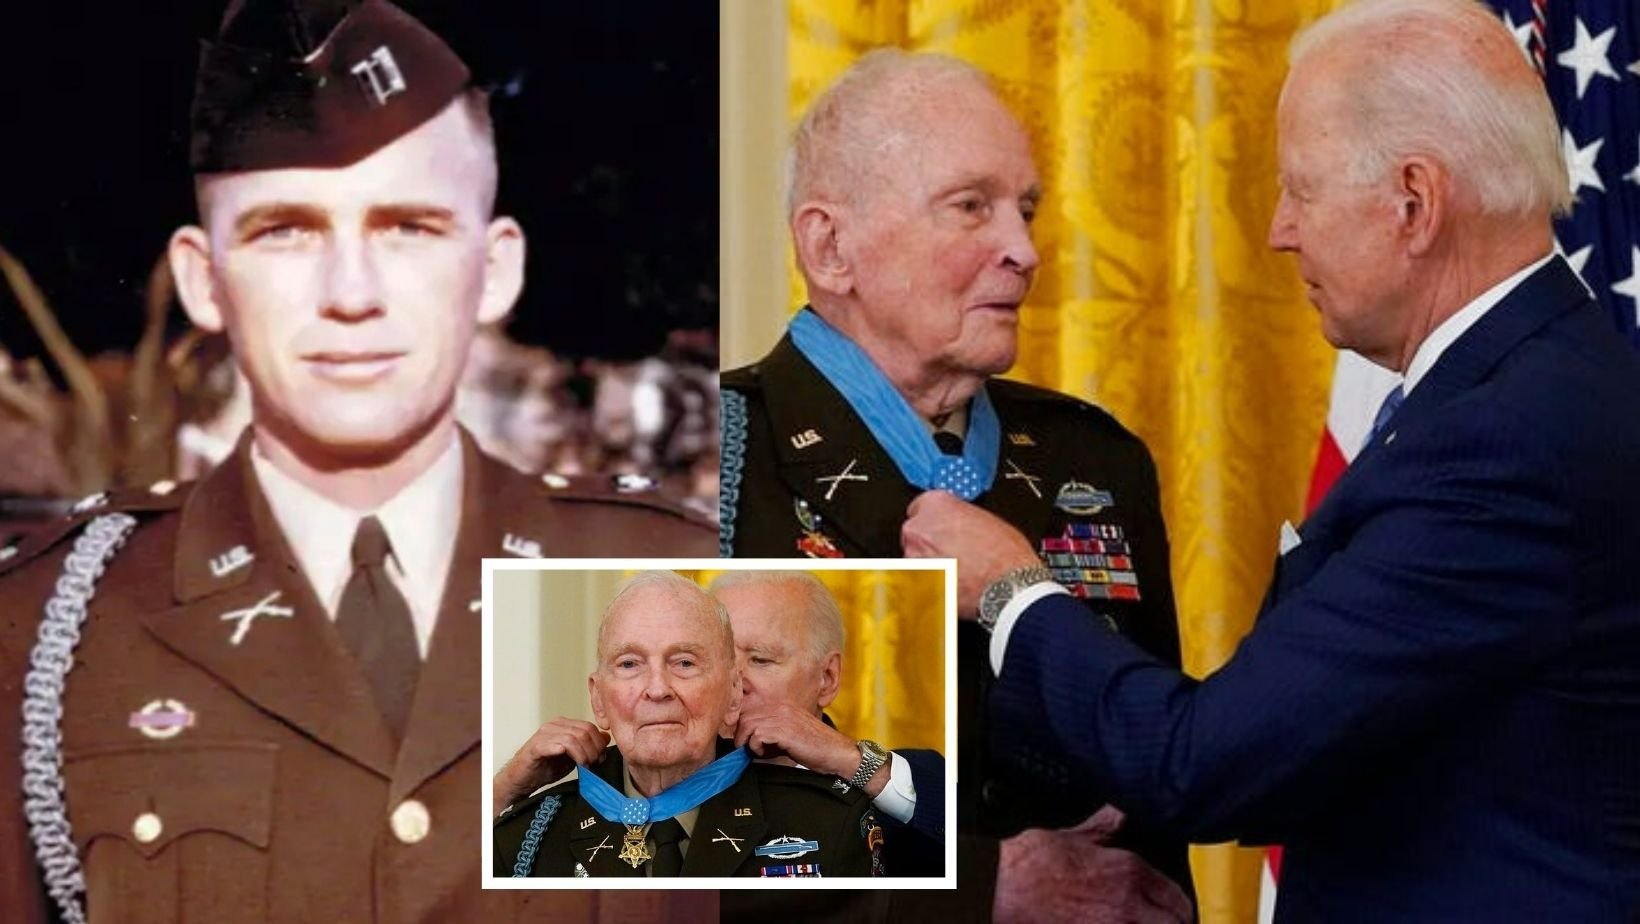 1 127.jpg?resize=1200,630 - Army Veteran, 94, Finally Receives Medal of Honor 70 Years After Heroism, Making Him One Of The Most Decorated Soldiers In The Country